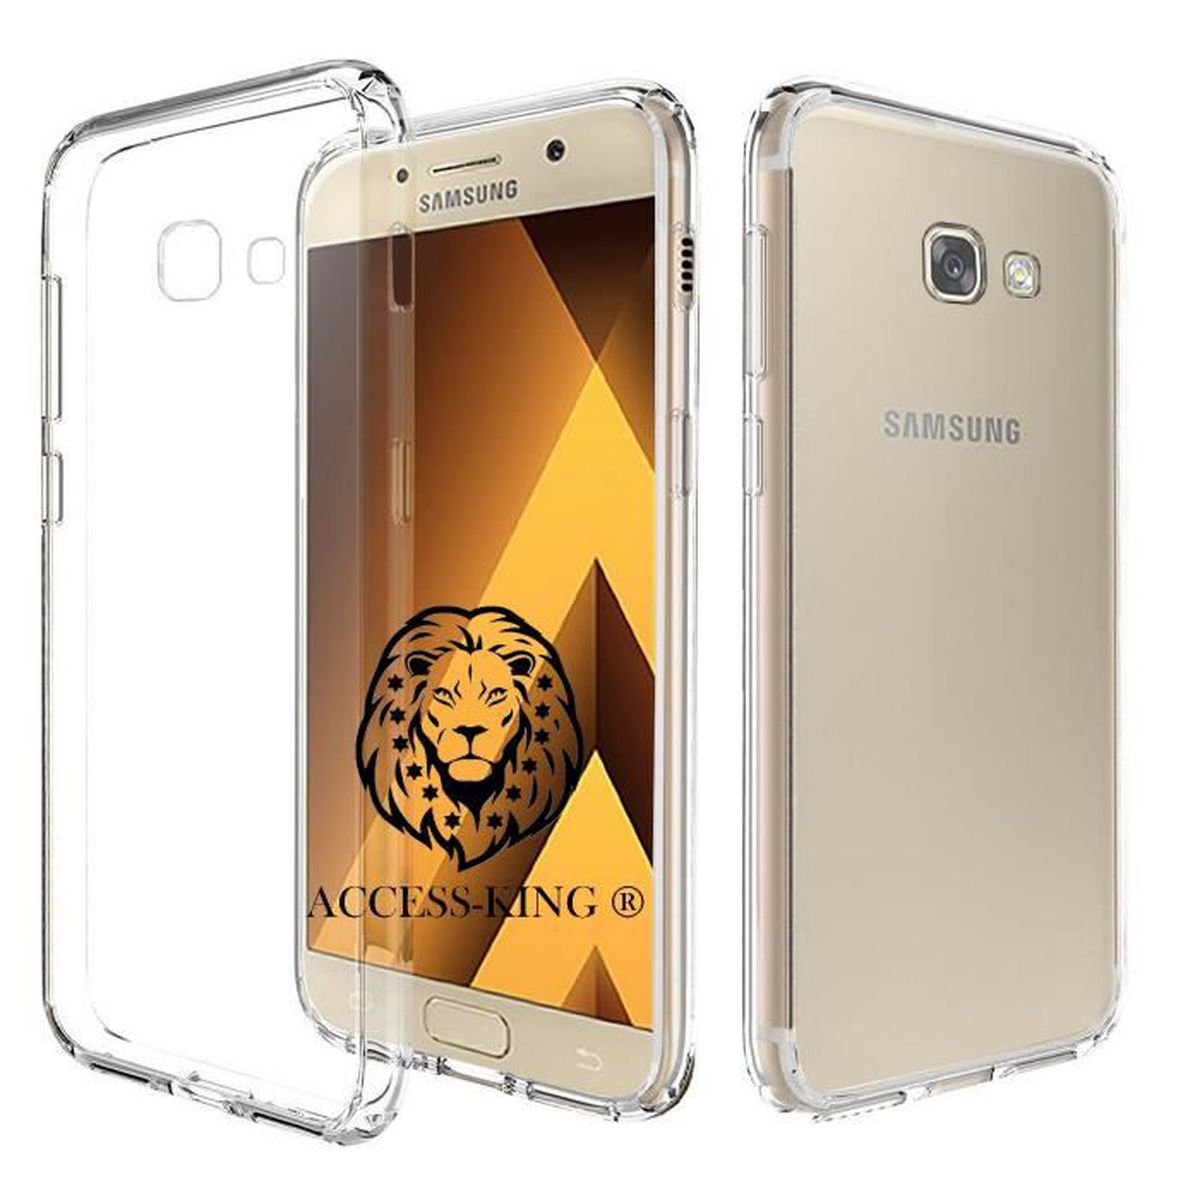 samsung galaxy a5 2017 etui ultra mince housse silicone transparent pour galaxy a5 2017 film. Black Bedroom Furniture Sets. Home Design Ideas